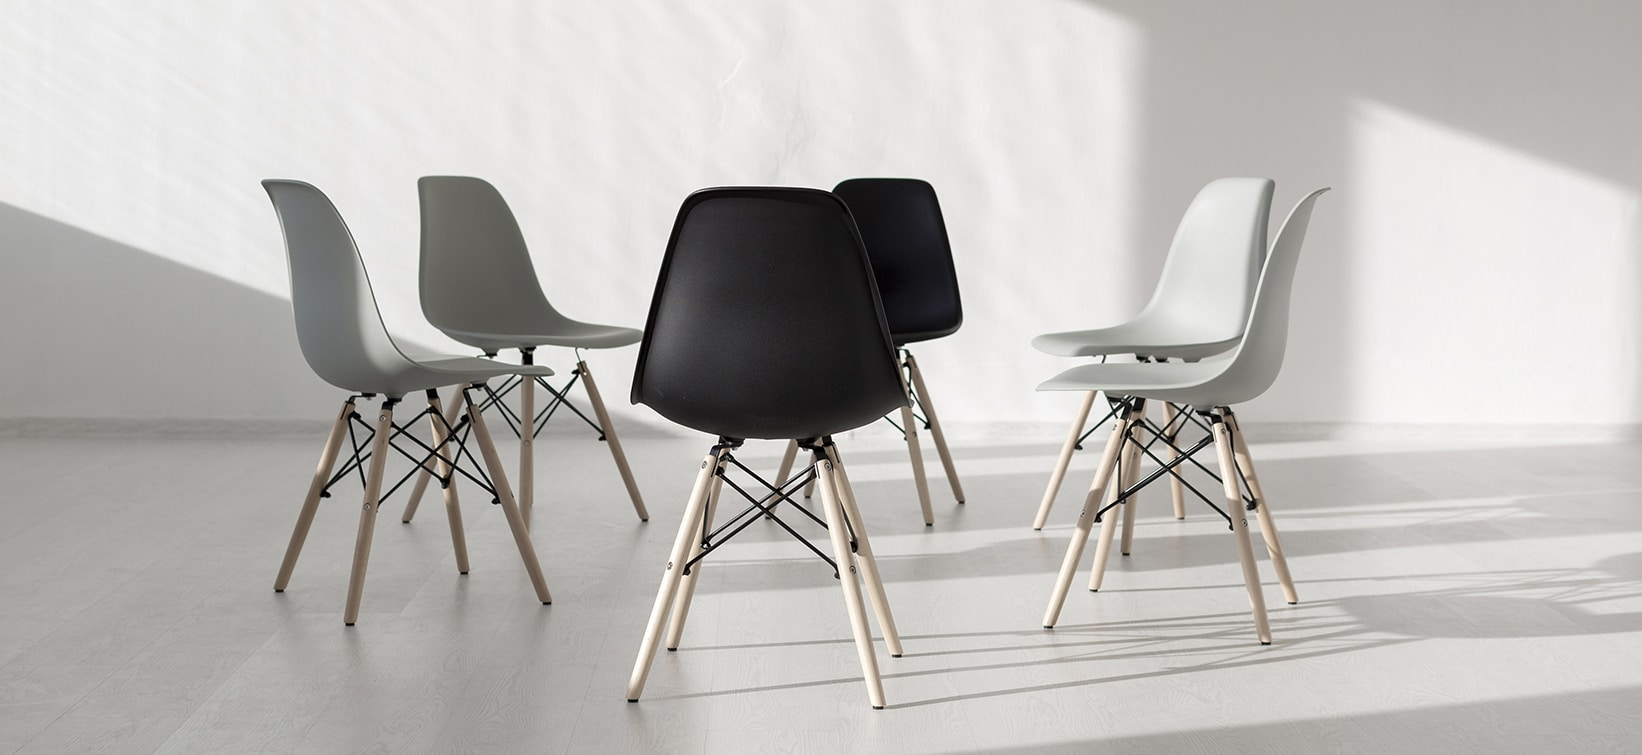 simple-chairs-arrange5d-in-a-circle